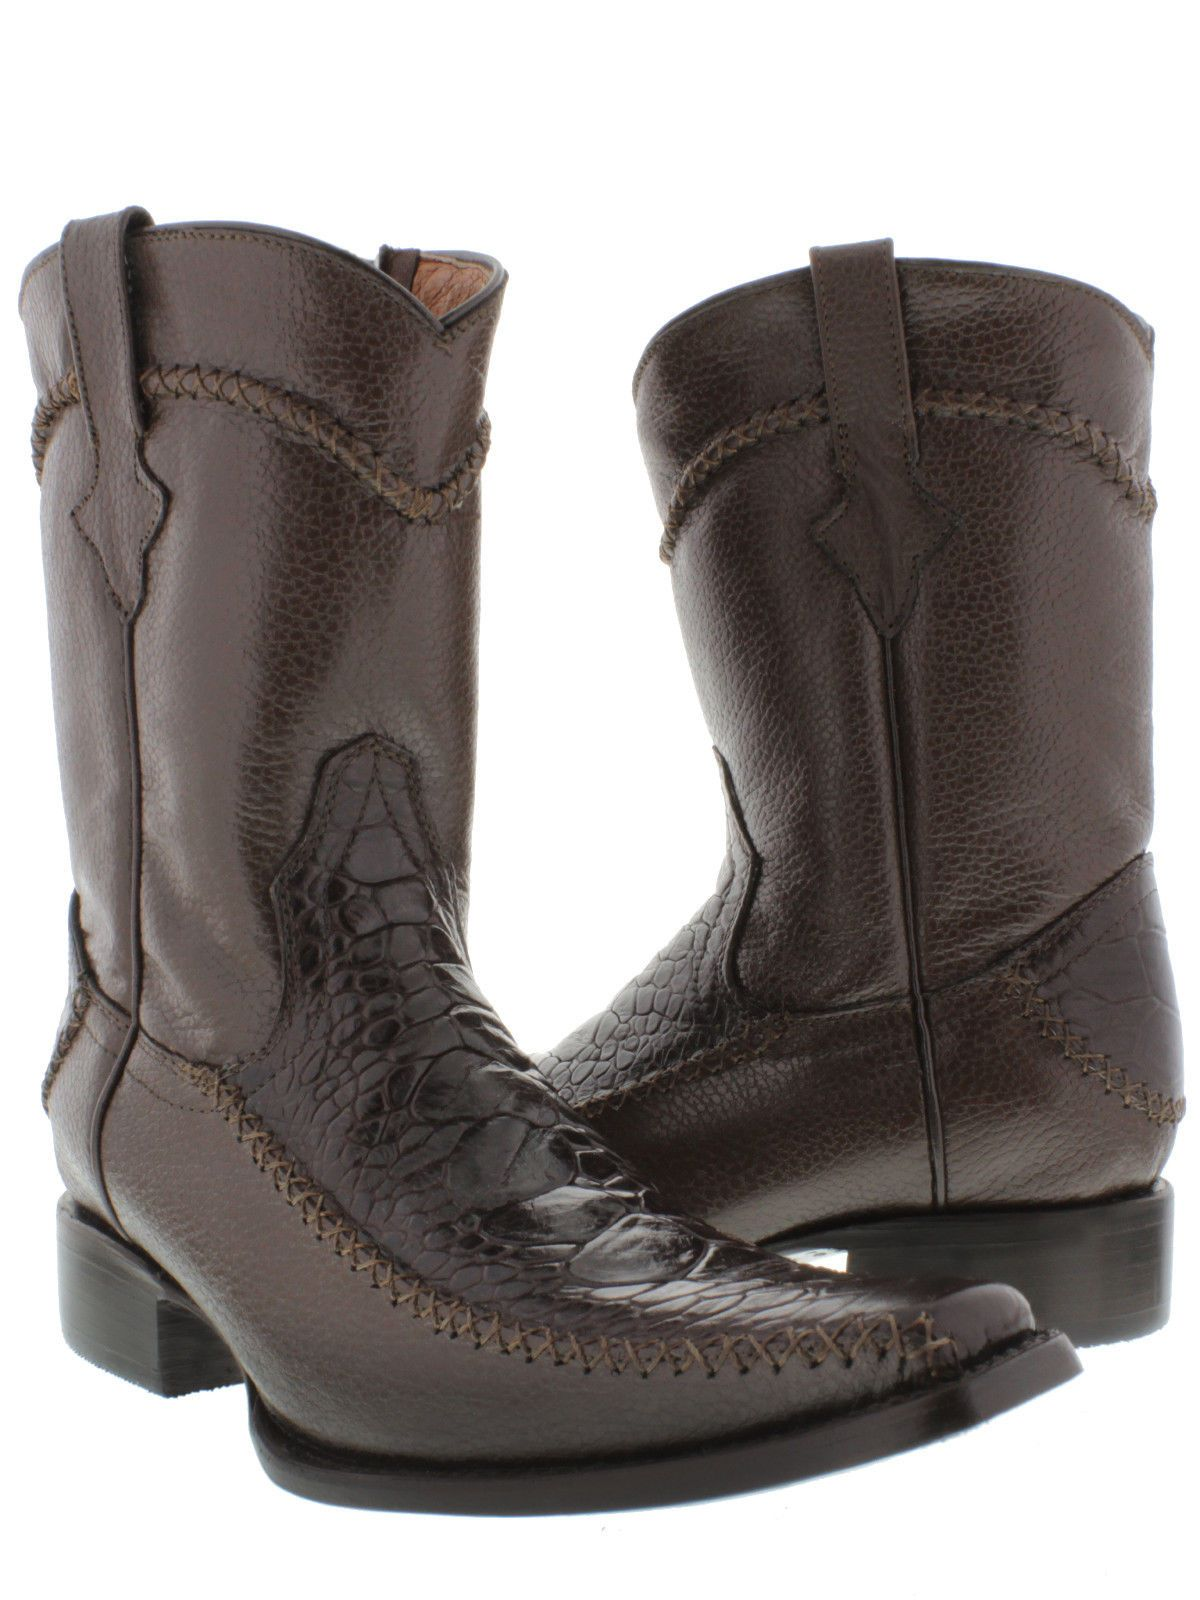 90db506f694 MEN'S BROWN ROCKERZ SEA TURTLE EXOTIC LEATHER WESTERN COWBOY BOOTS ...